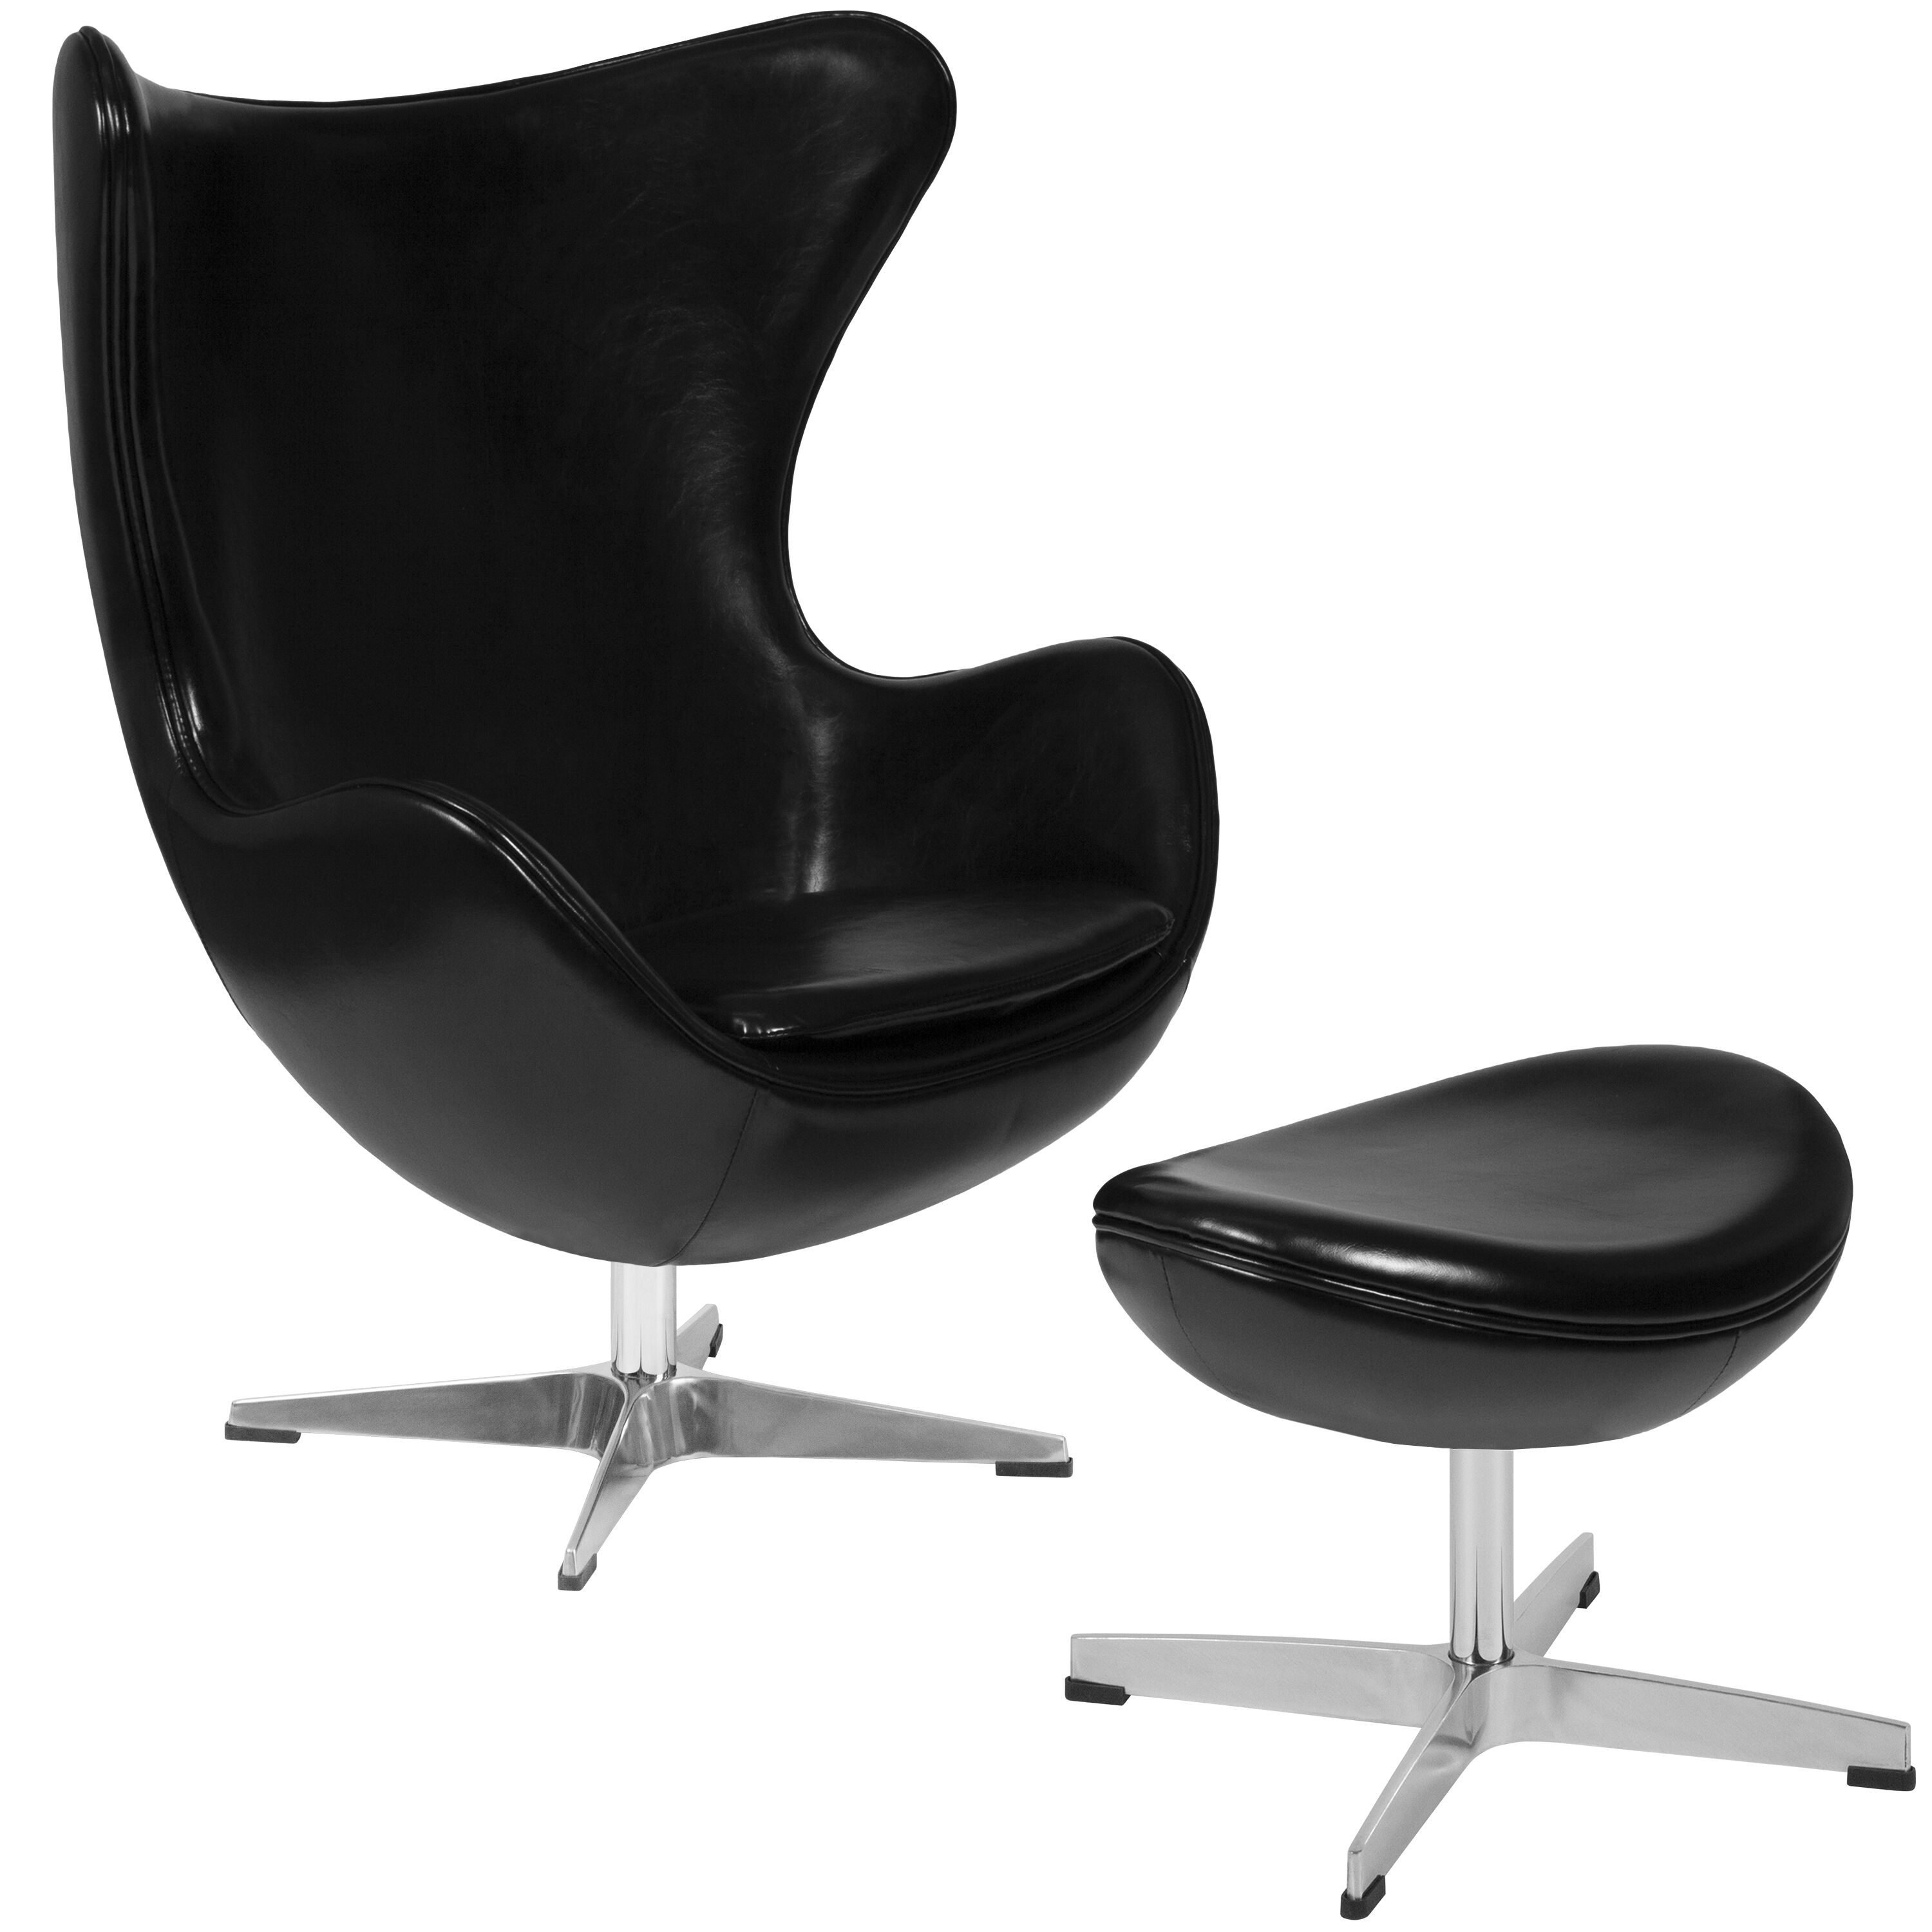 Black Leather Egg Chair with Tilt-Lock Mechanism and Ottoman  sc 1 st  Bizchair.com & Office Reception Seating Guest And Lounge Chairs | BizChair.com